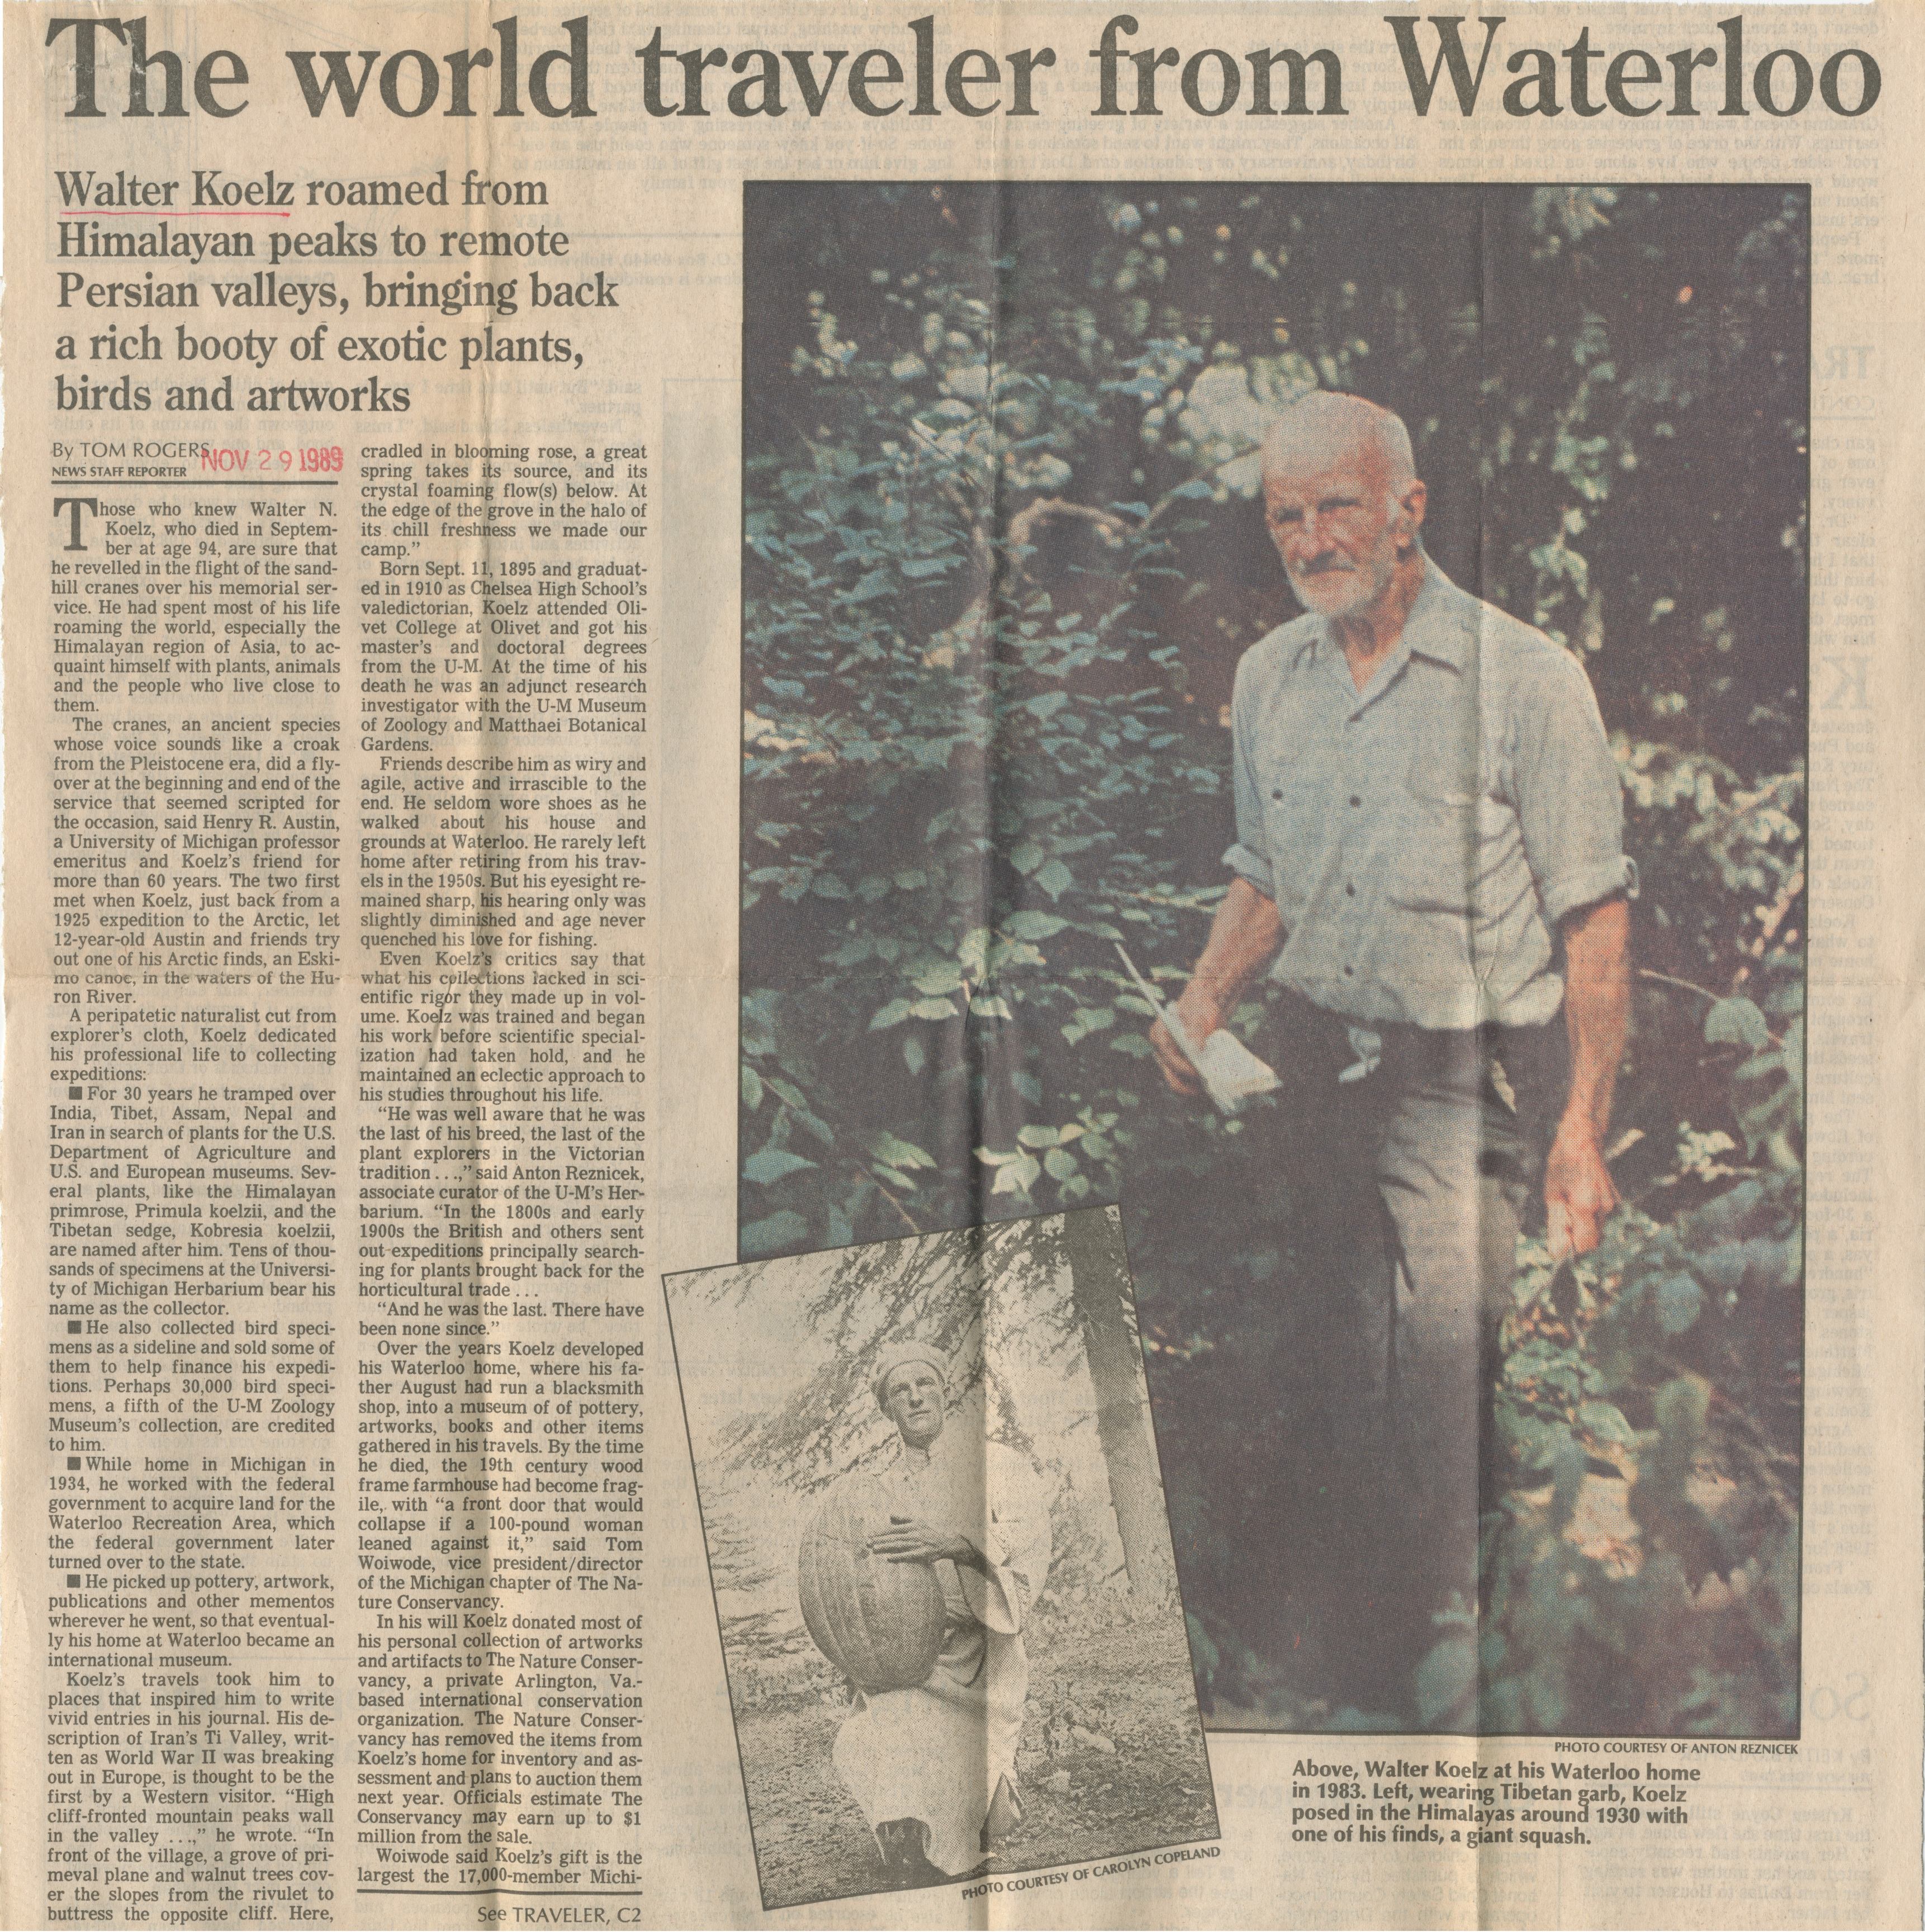 The world traveler from Waterloo image